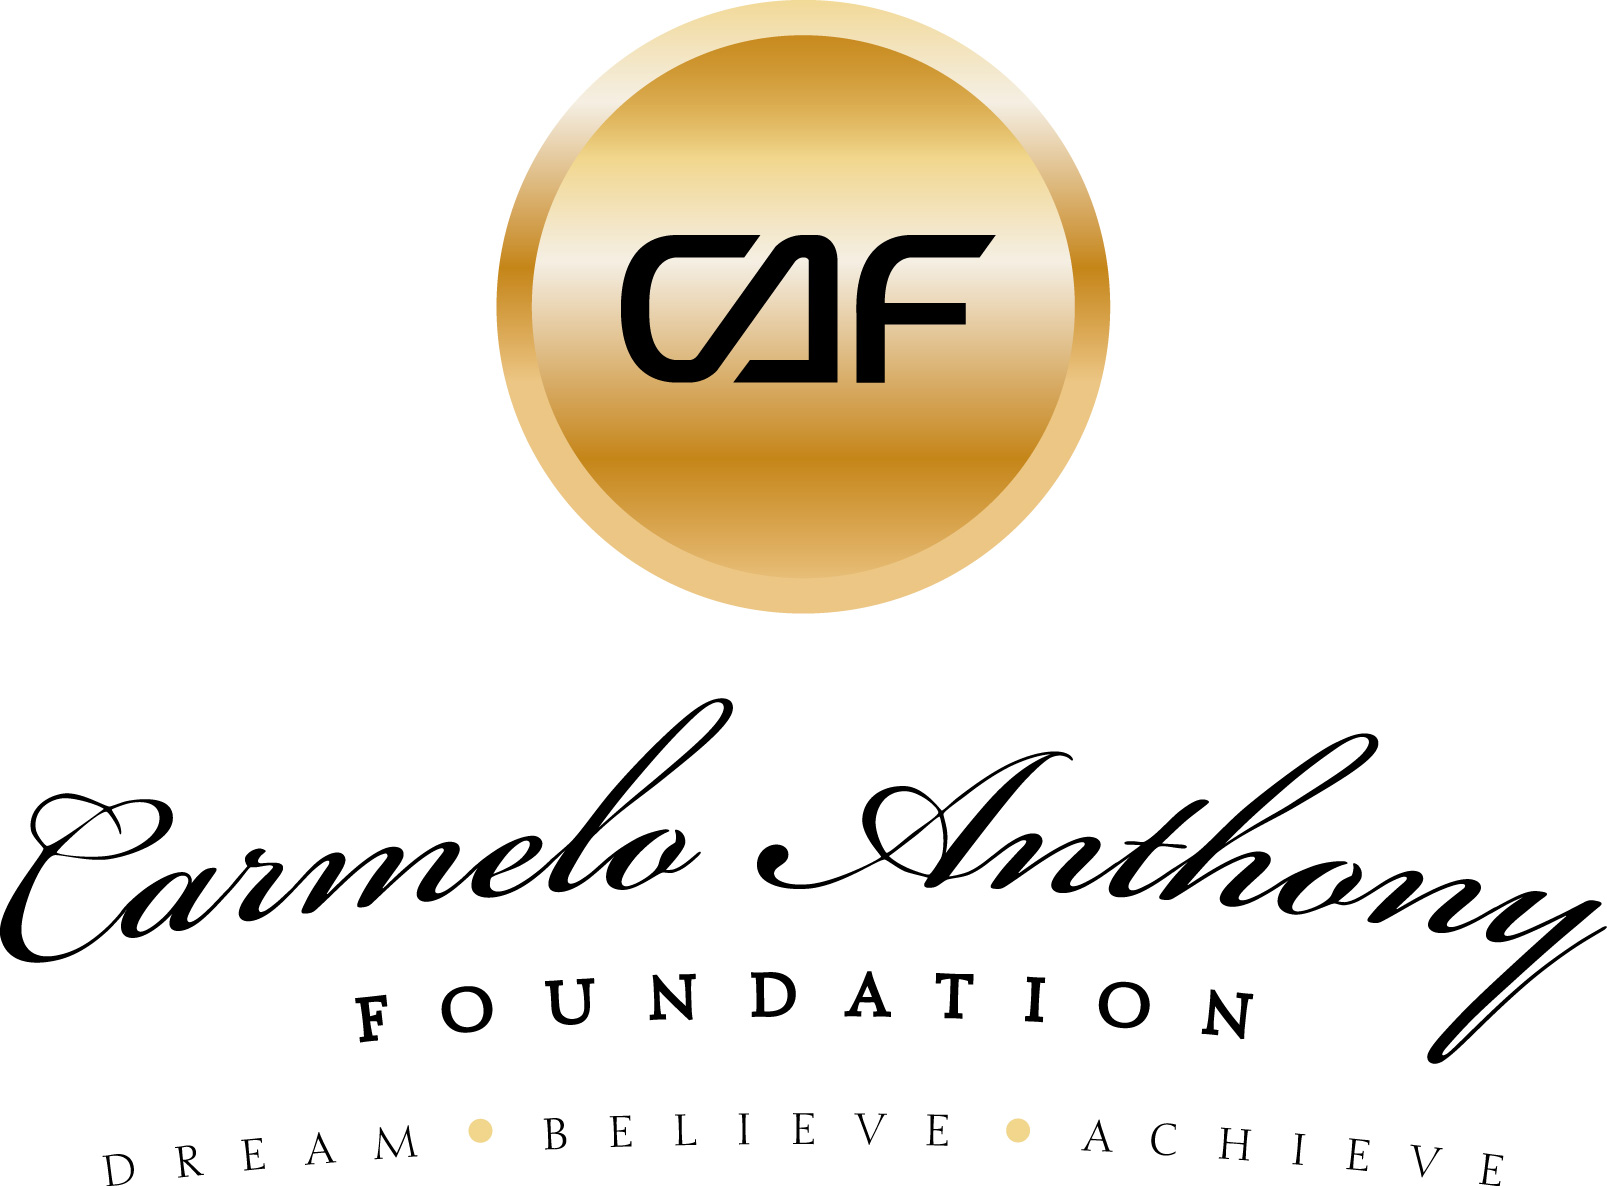 Carmelo Anthony Foundation logo